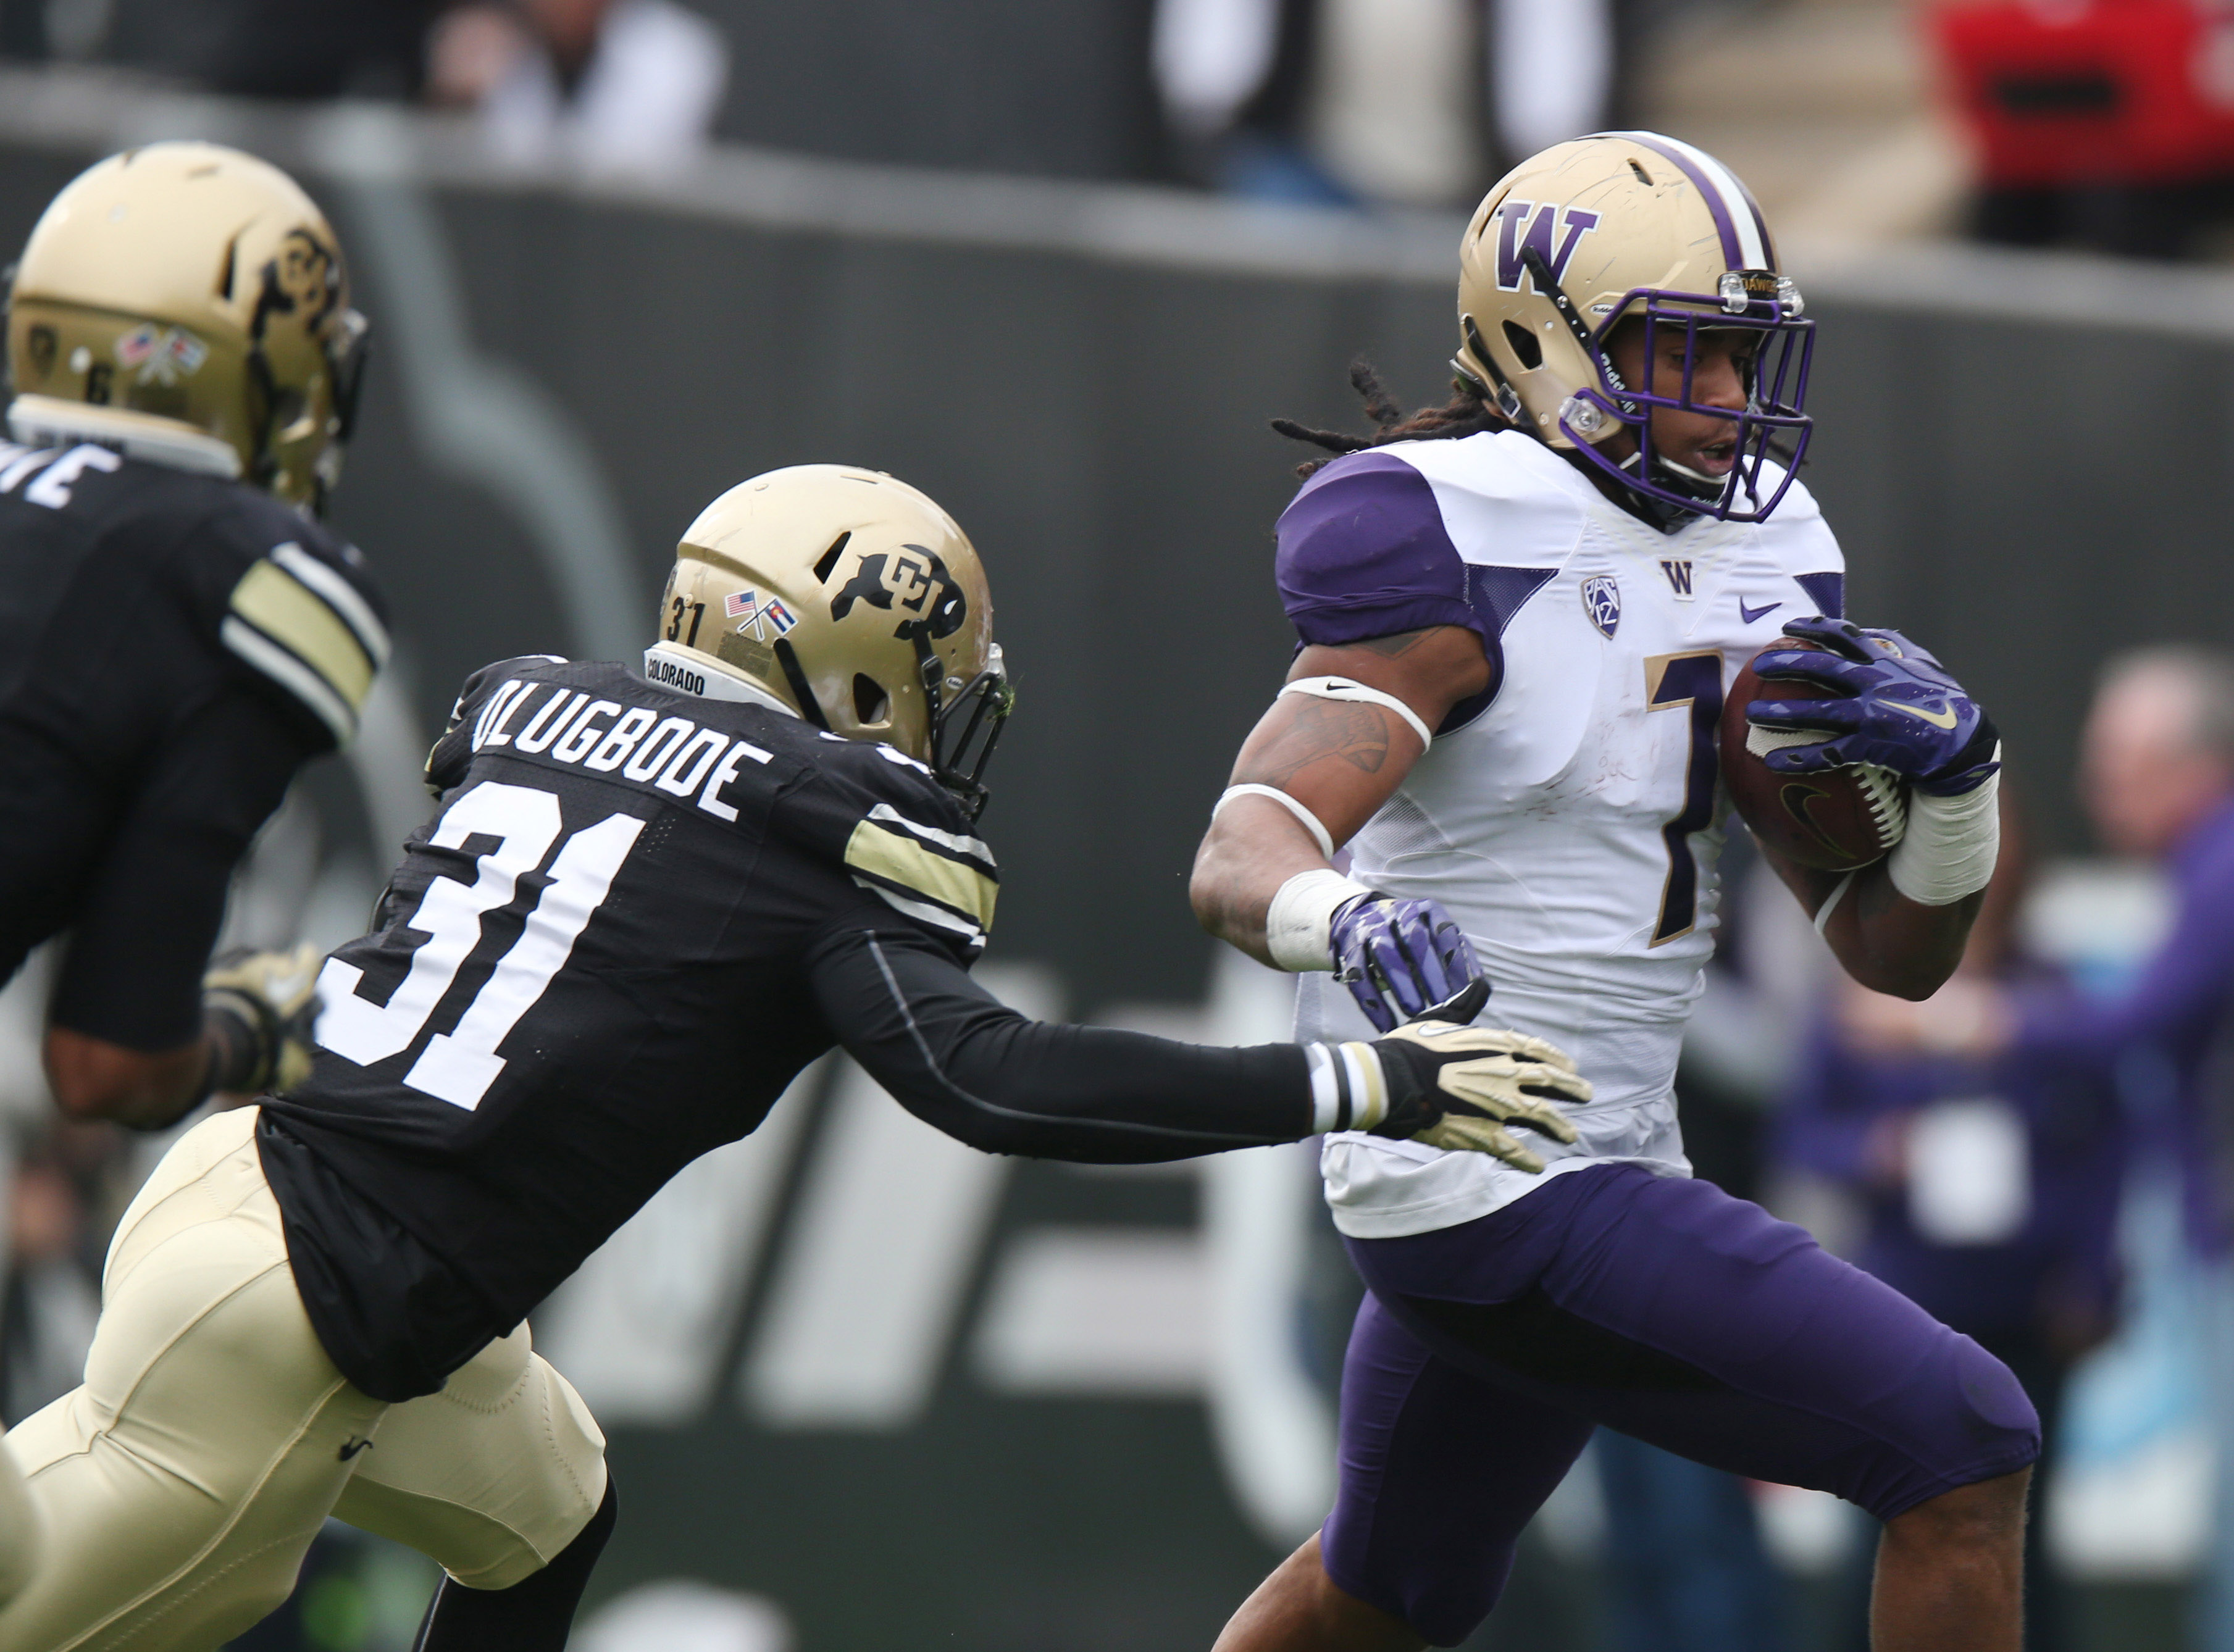 In this Saturday, Nov. 1, 2014, photo, Washington running back Shaq Thompson, right, eludes a tackle attempt by Colorado linebacker Kenneth Olugbode during an NCAA college football game in Boulder, Colo. Olugbode will be back on the gridiron when Colorado